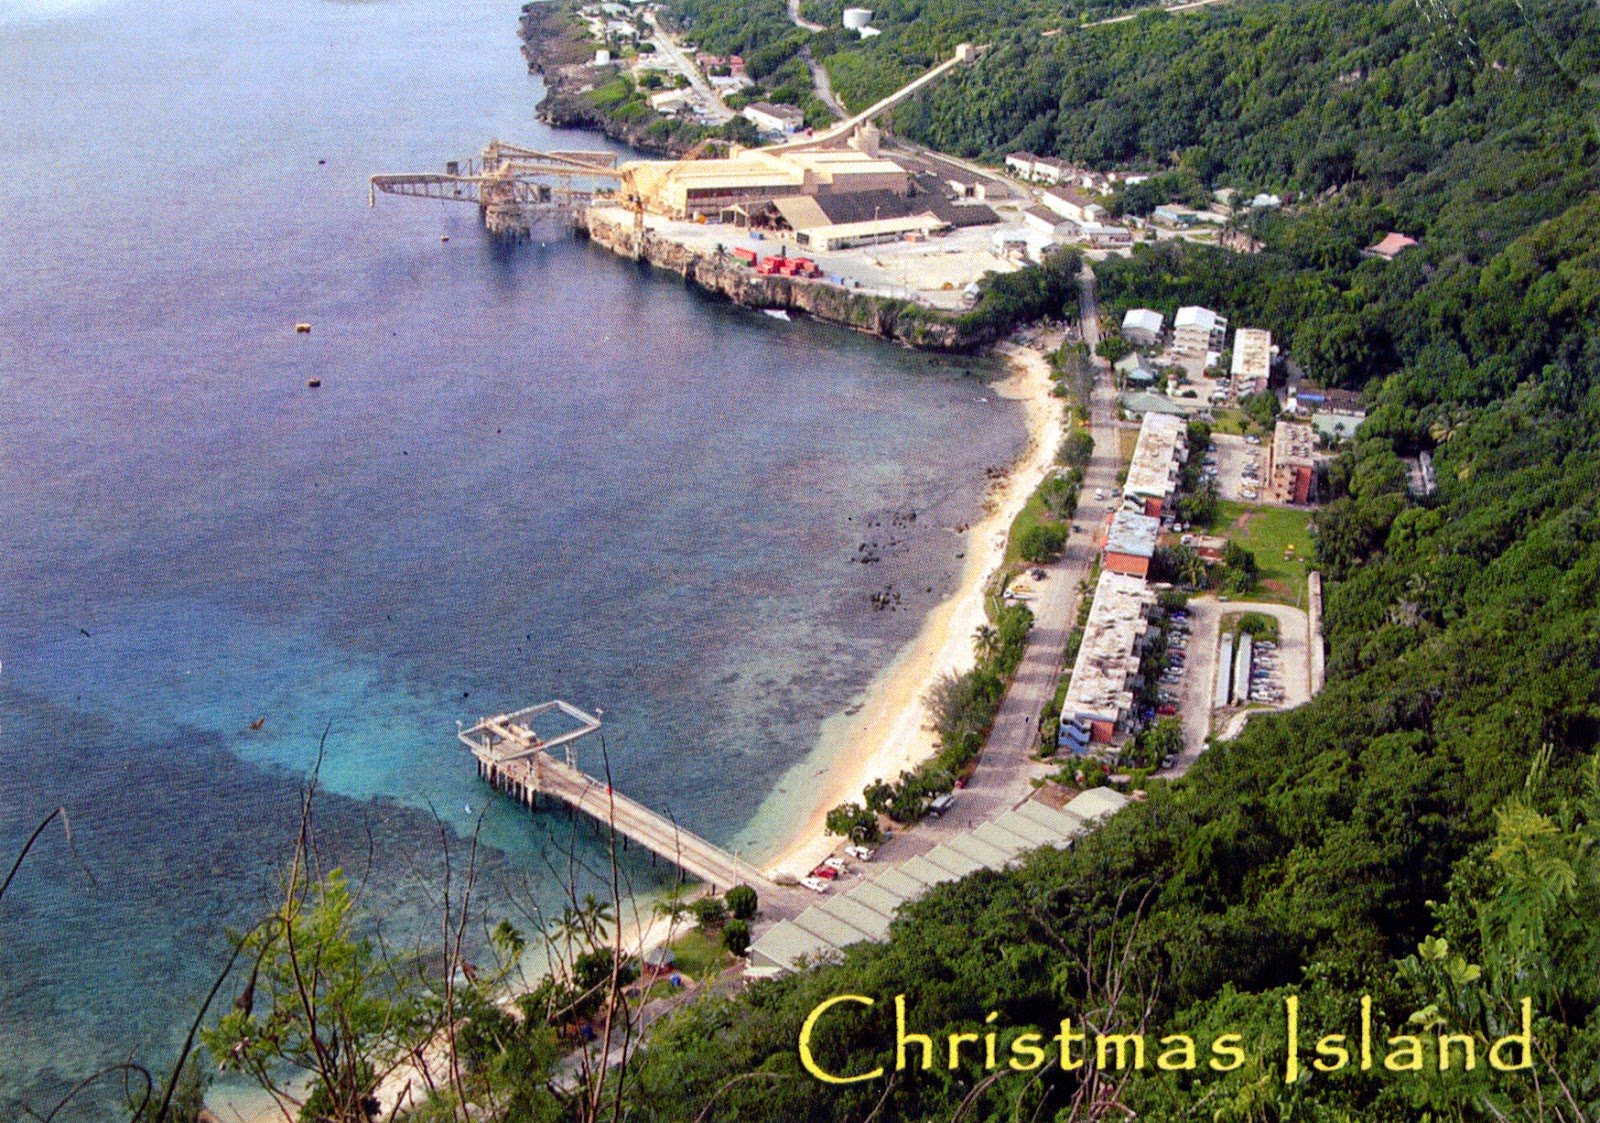 ... COME TO MY HOME!: 1202 AUSTRALIA (Christmas Island) - Flying Fish Cove